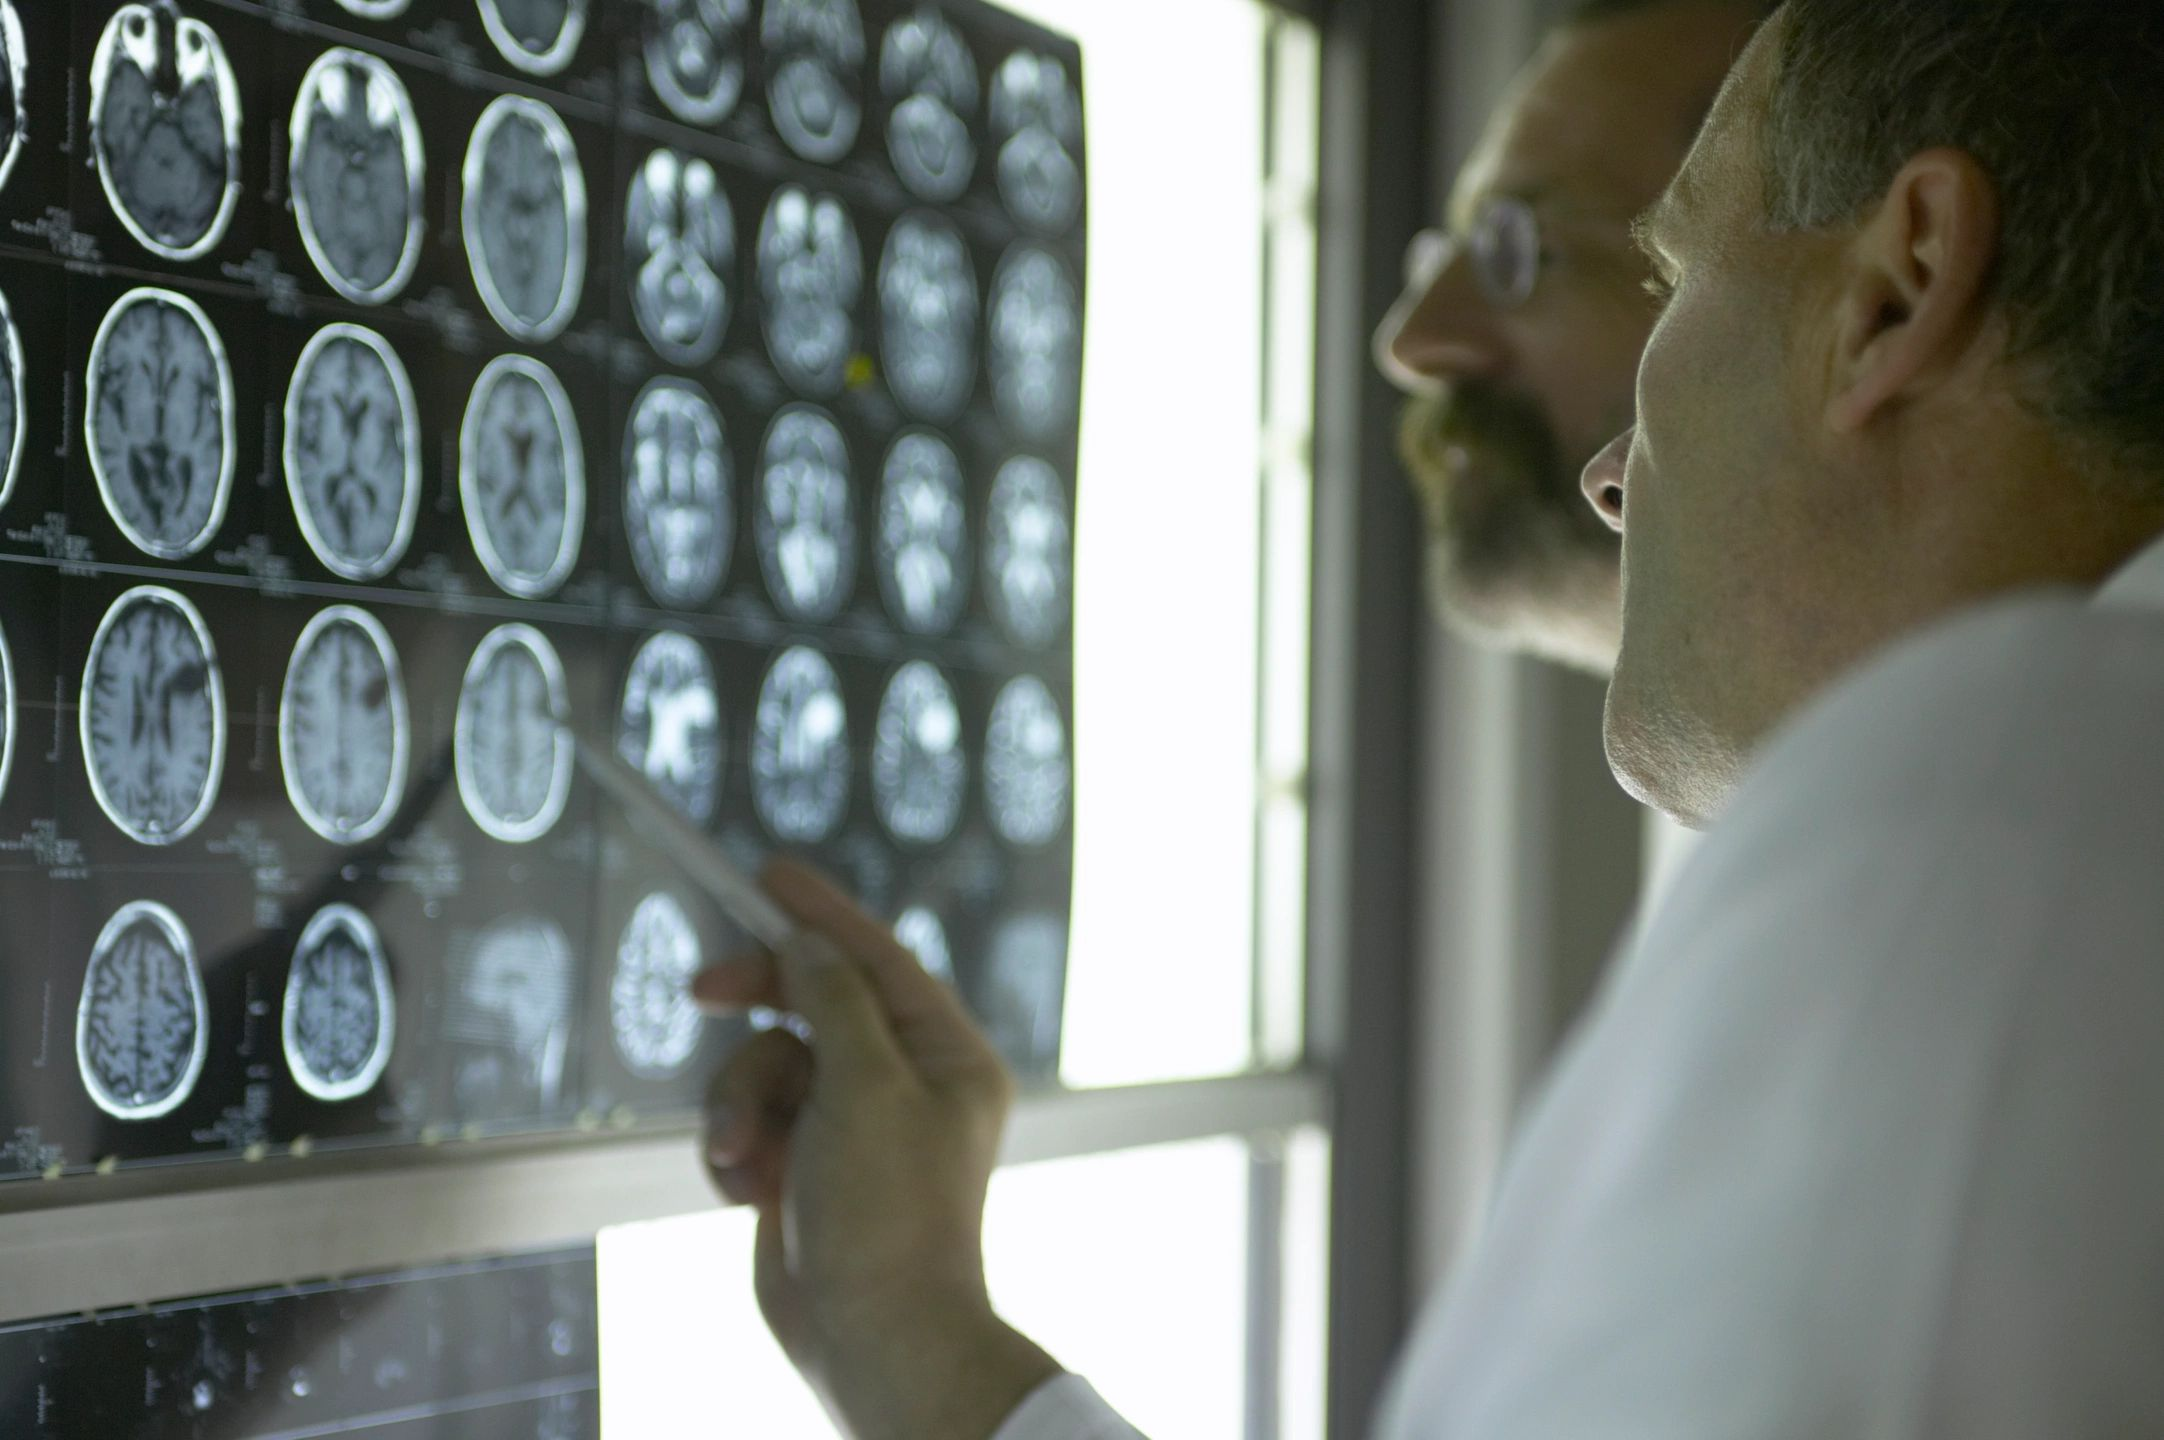 Doctors looking over brain scan images